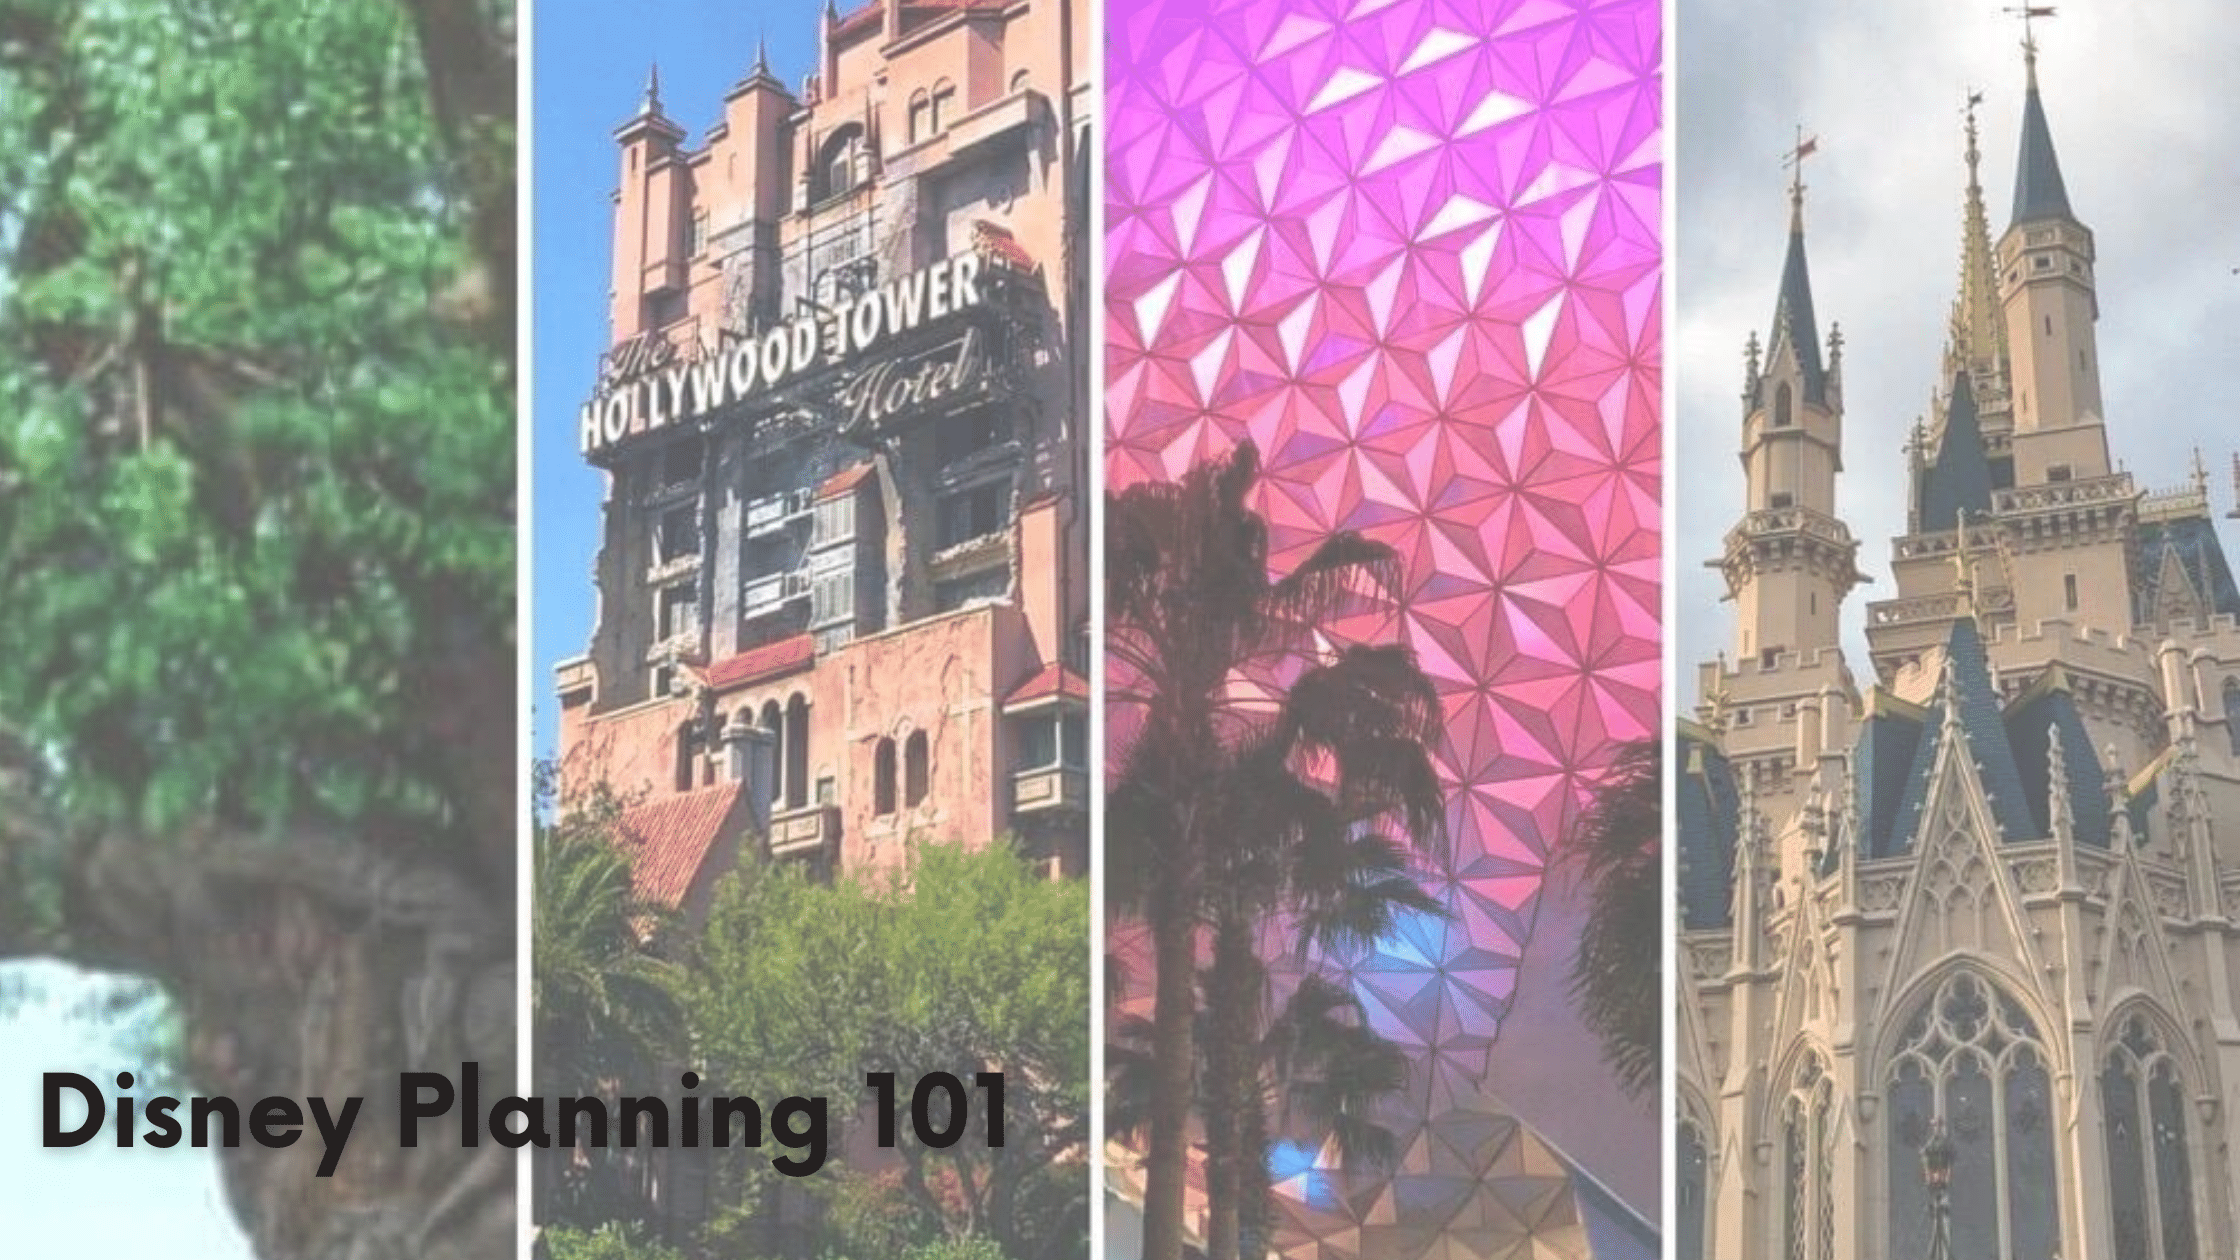 Walt Disney World Vacation Planning 101: How to Begin Planning for a Visit to the Mouse